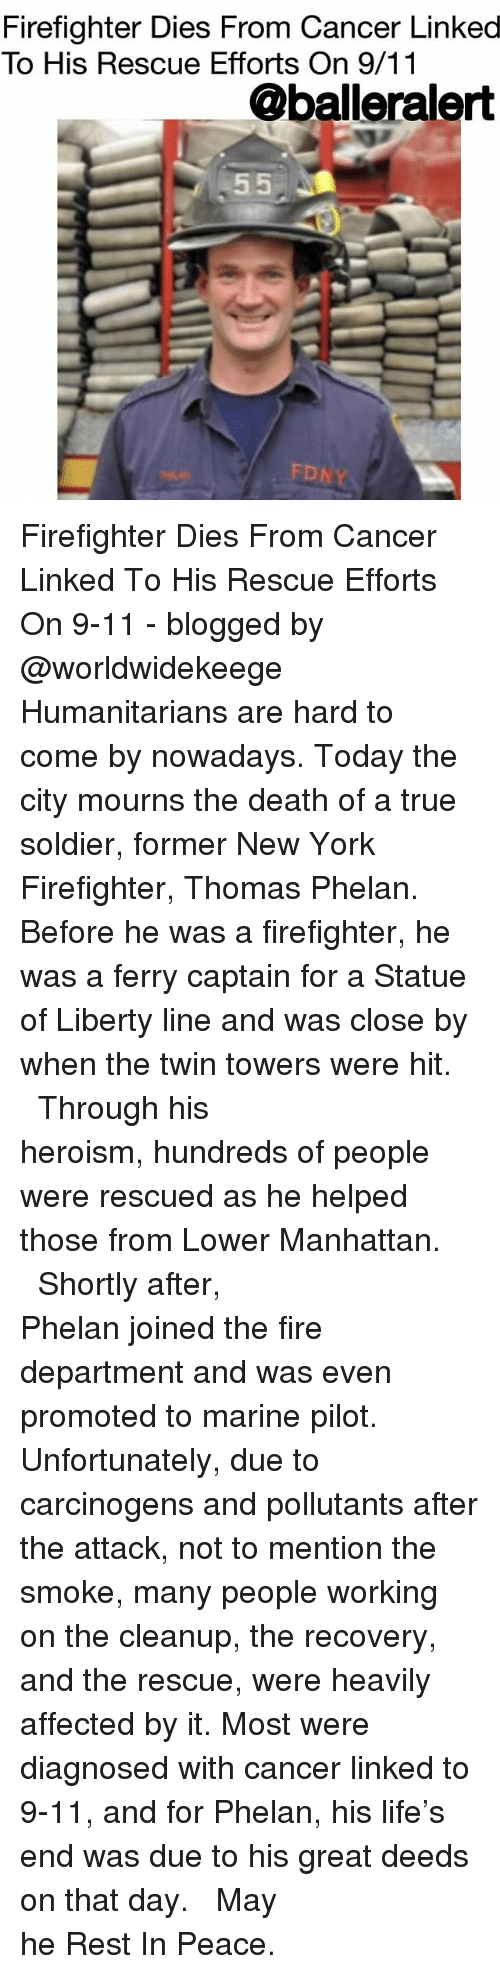 Deeds: Firefighter Dies From Cancer Linked  To His Rescue Efforts On 9/11  @balleralert  FD Firefighter Dies From Cancer Linked To His Rescue Efforts On 9-11 - blogged by @worldwidekeege ⠀⠀⠀⠀⠀⠀⠀⠀⠀ ⠀⠀⠀⠀⠀⠀⠀⠀⠀ Humanitarians are hard to come by nowadays. Today the city mourns the death of a true soldier, former New York Firefighter, Thomas Phelan. Before he was a firefighter, he was a ferry captain for a Statue of Liberty line and was close by when the twin towers were hit. ⠀⠀⠀⠀⠀⠀⠀⠀⠀ ⠀⠀⠀⠀⠀⠀⠀⠀⠀ Through his heroism, hundreds of people were rescued as he helped those from Lower Manhattan. ⠀⠀⠀⠀⠀⠀⠀⠀⠀ ⠀⠀⠀⠀⠀⠀⠀⠀⠀ Shortly after, Phelan joined the fire department and was even promoted to marine pilot. Unfortunately, due to carcinogens and pollutants after the attack, not to mention the smoke, many people working on the cleanup, the recovery, and the rescue, were heavily affected by it. Most were diagnosed with cancer linked to 9-11, and for Phelan, his life's end was due to his great deeds on that day. ⠀⠀⠀⠀⠀⠀⠀⠀⠀ ⠀⠀⠀⠀⠀⠀⠀⠀⠀ May he Rest In Peace.